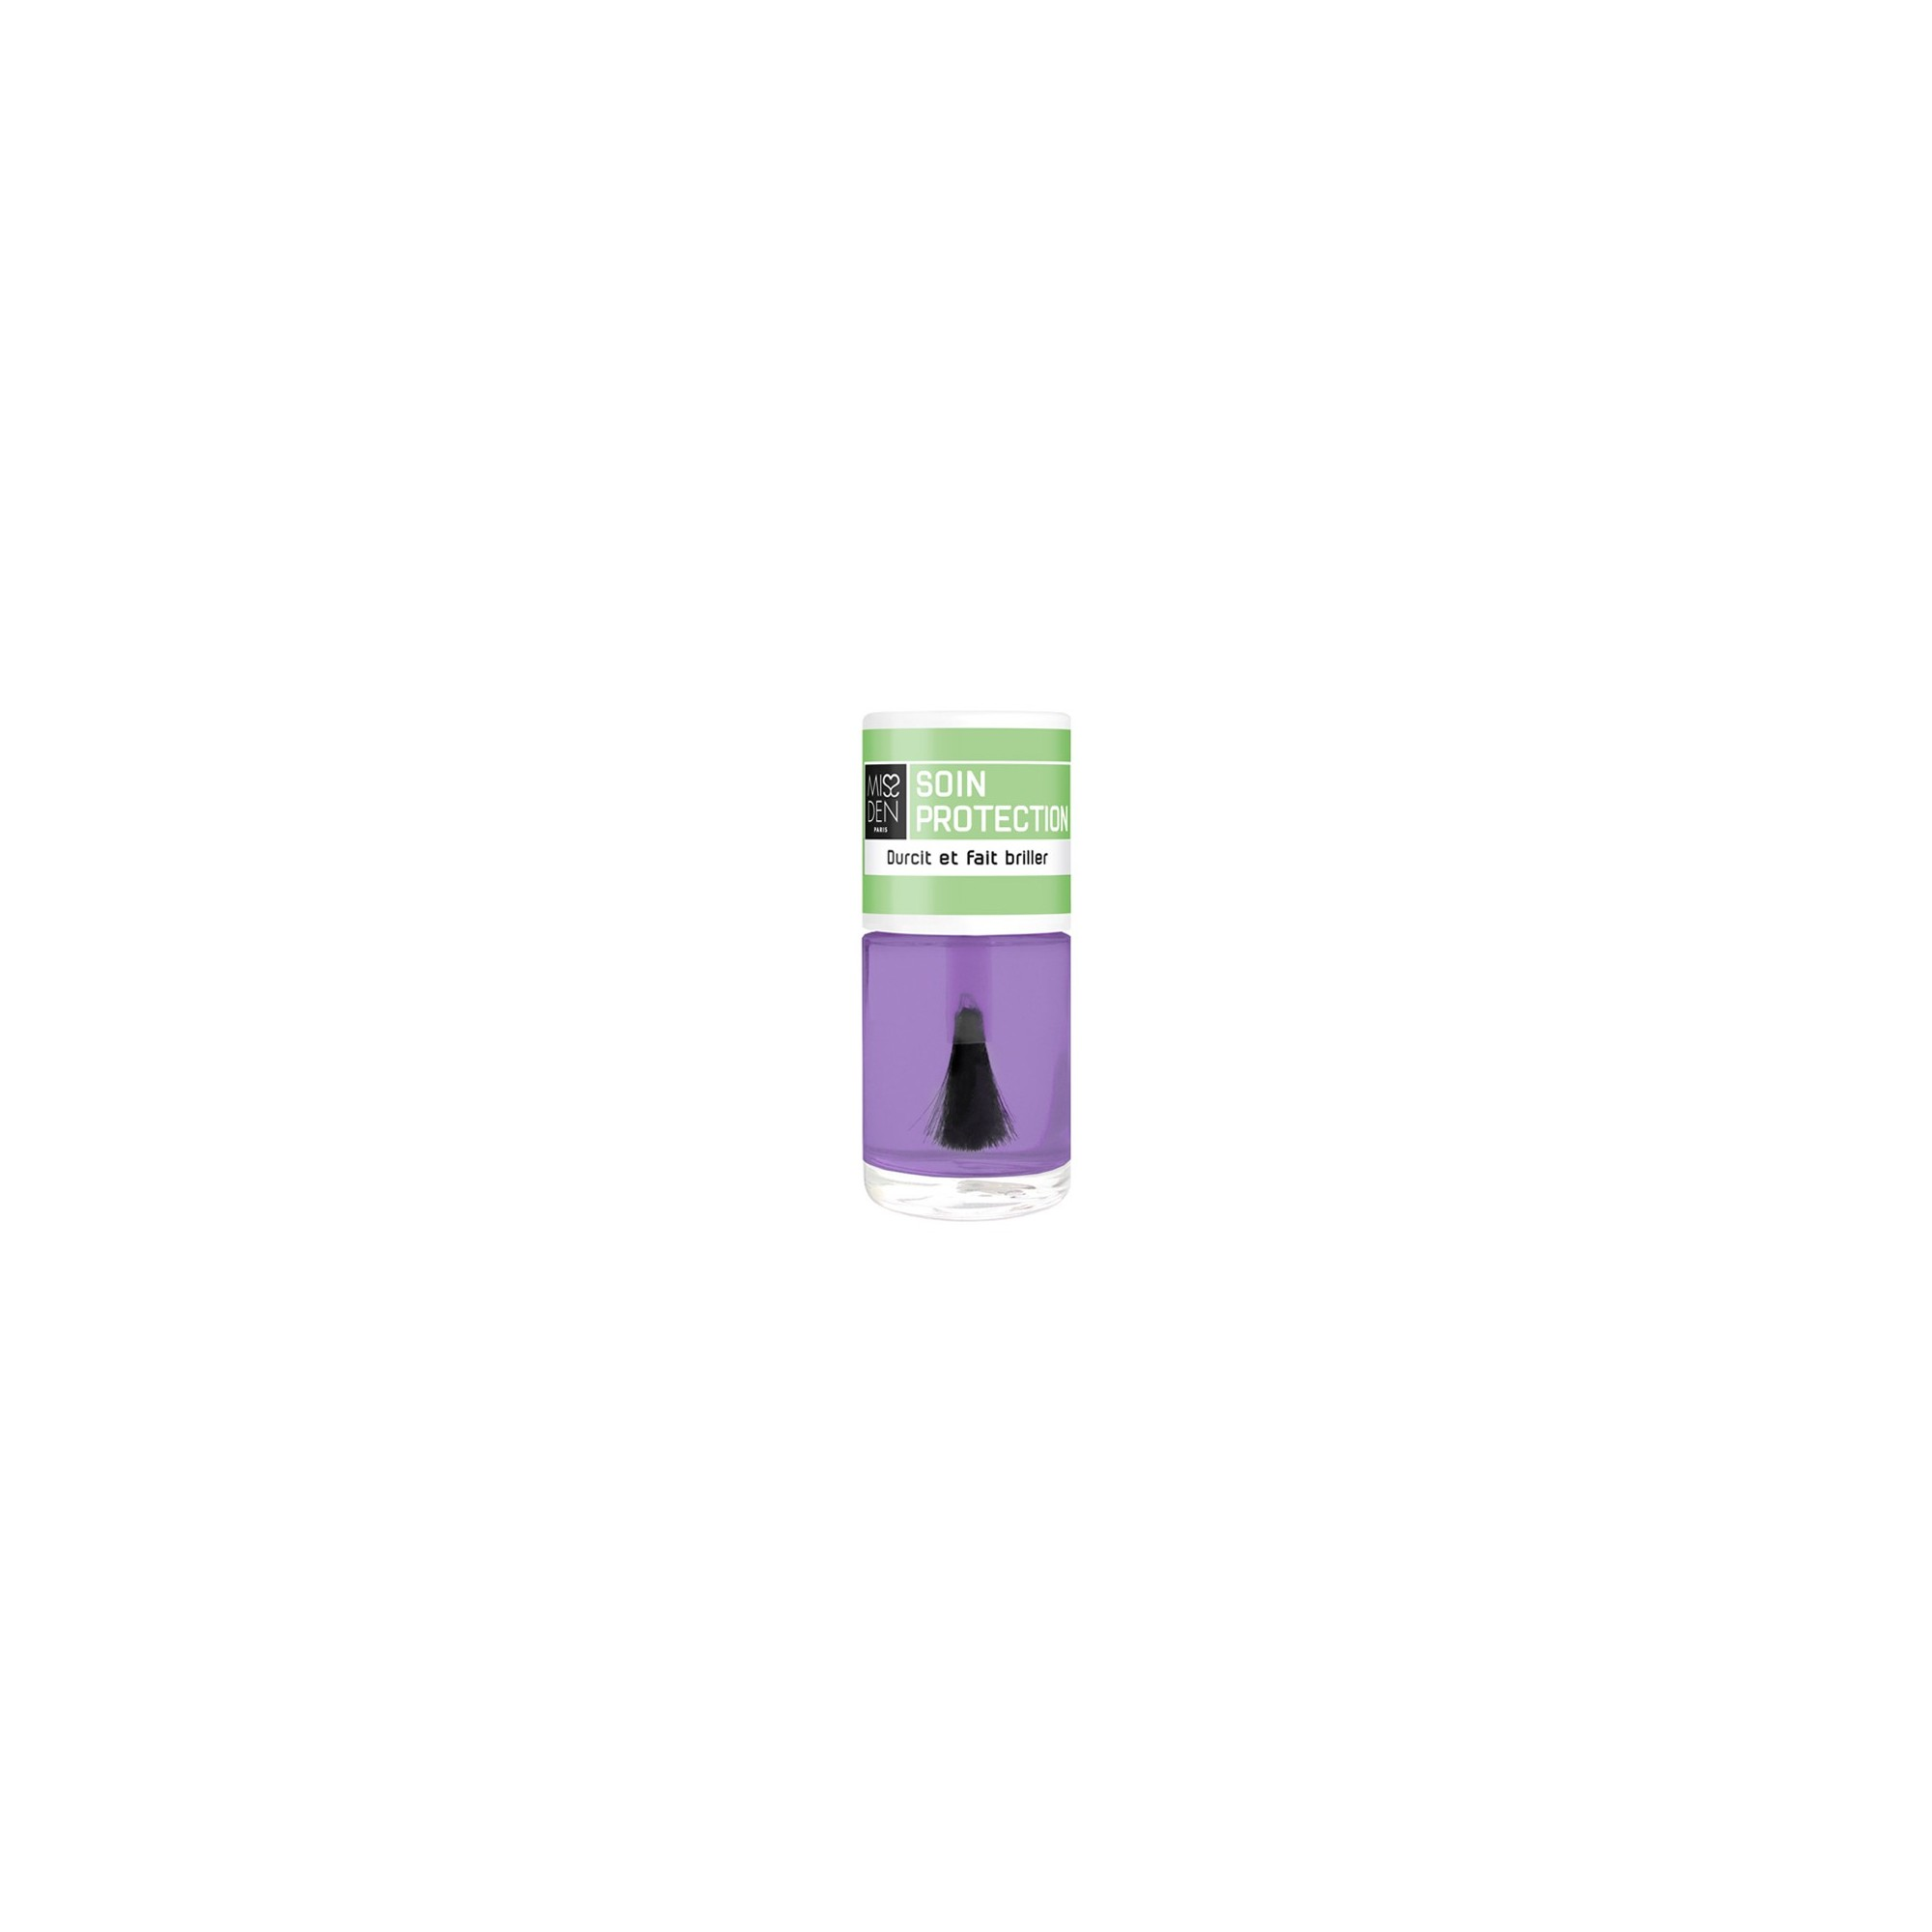 VERNIS SOIN PROTECTION